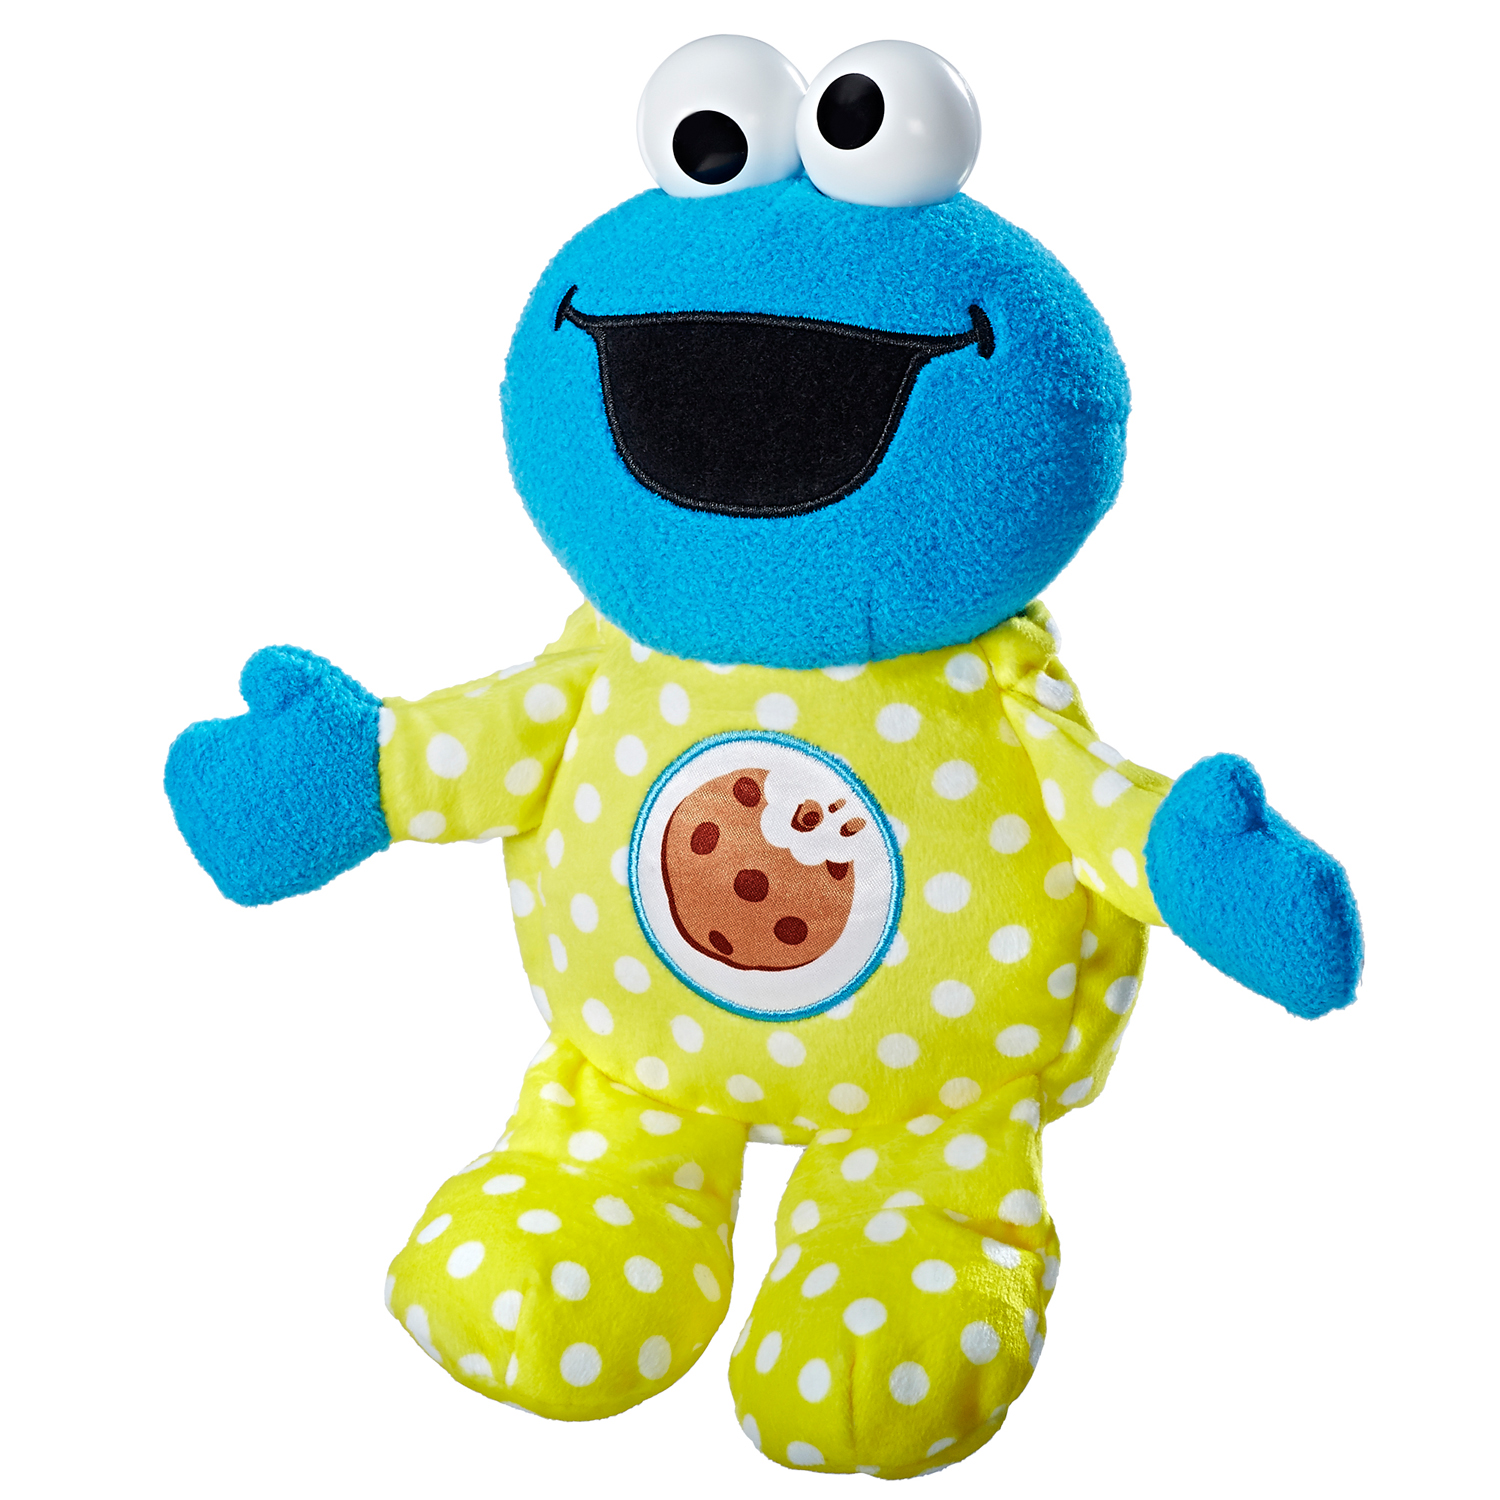 Playskool Friends Sesame Street Snuggle Me In Cookie Monster by Hasbro